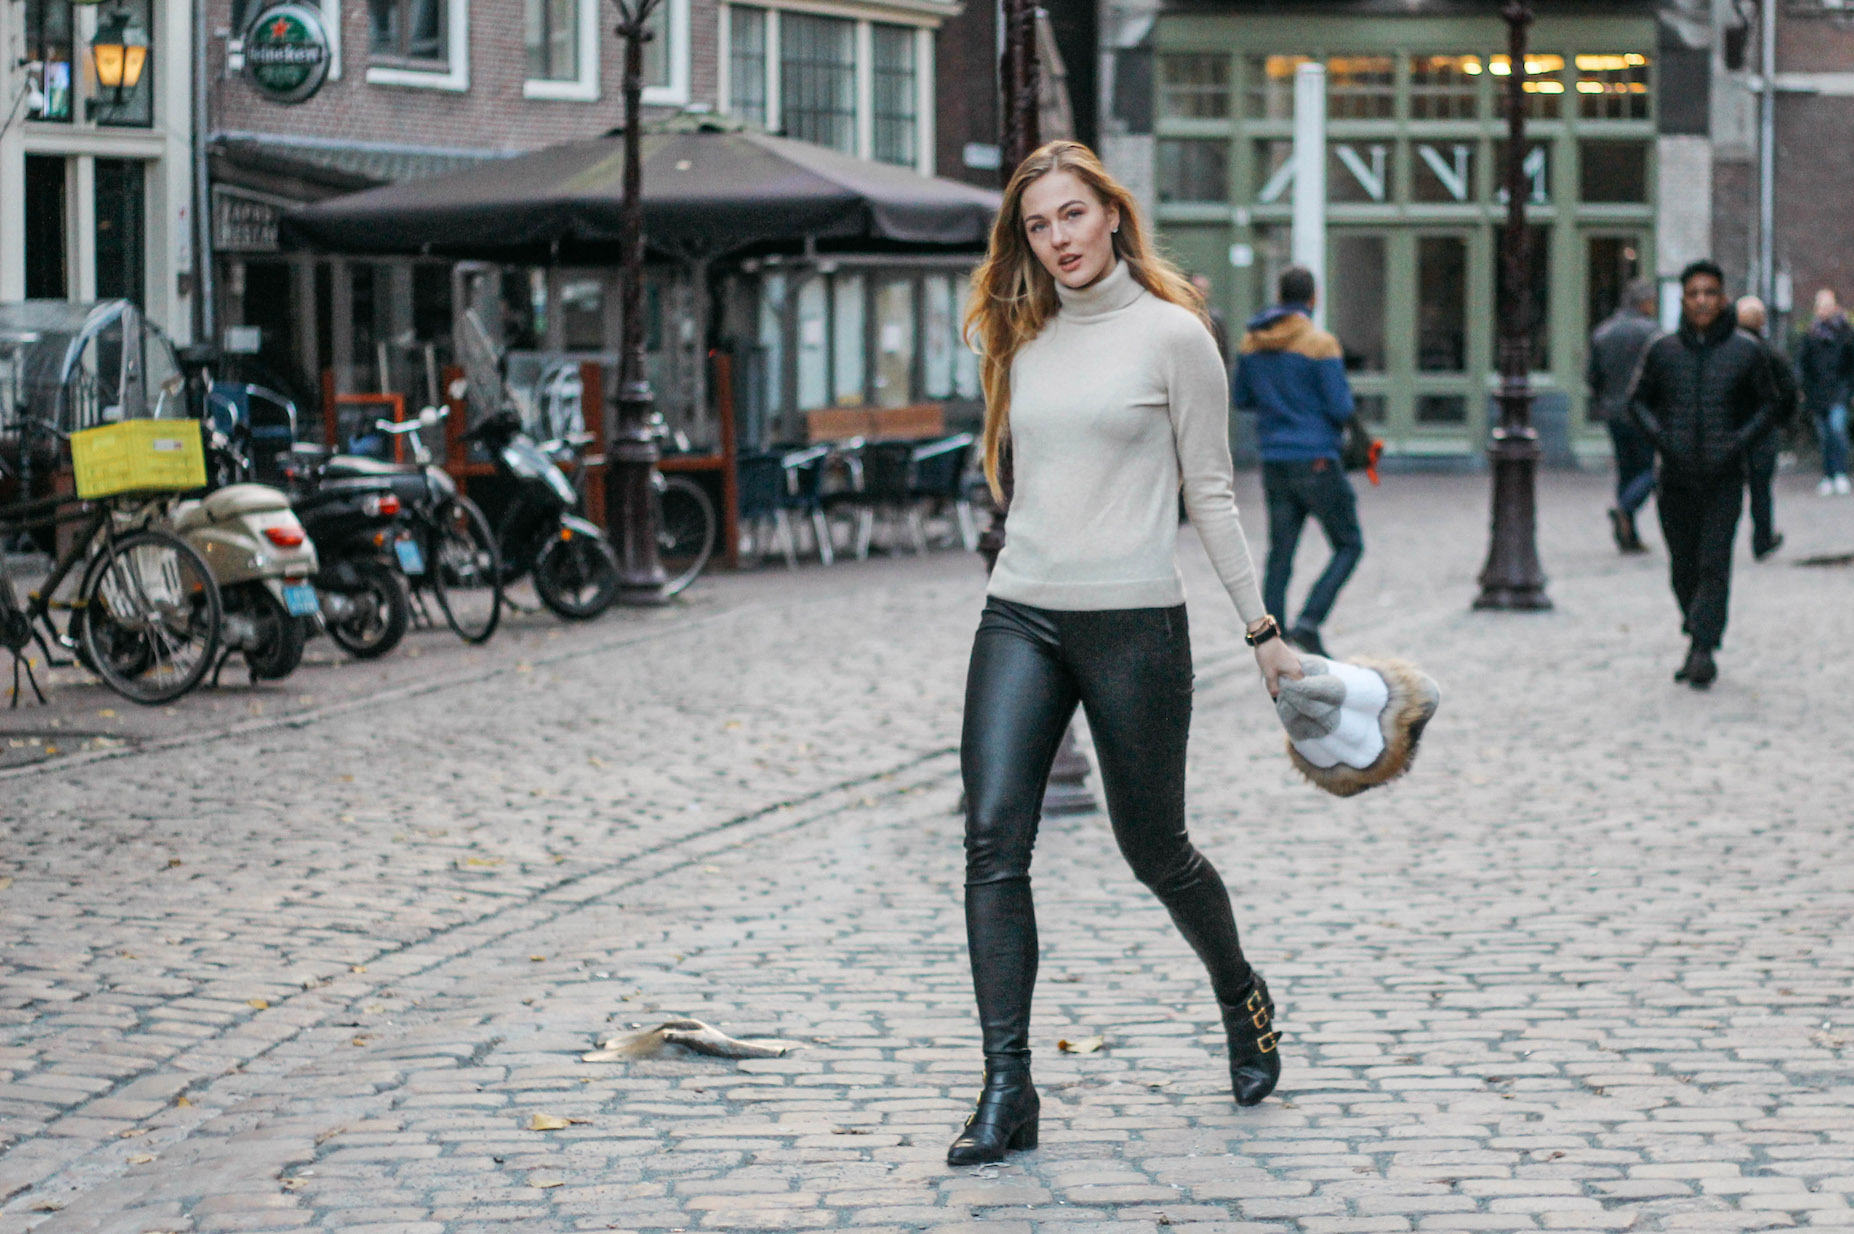 Floortjeloves, eyes on misha, Massimo dutti, dkny, dkny smart watch, smart watch, Paul green, y.a.s, leather leggings, cashmere sweater, turtleneck, fur bag